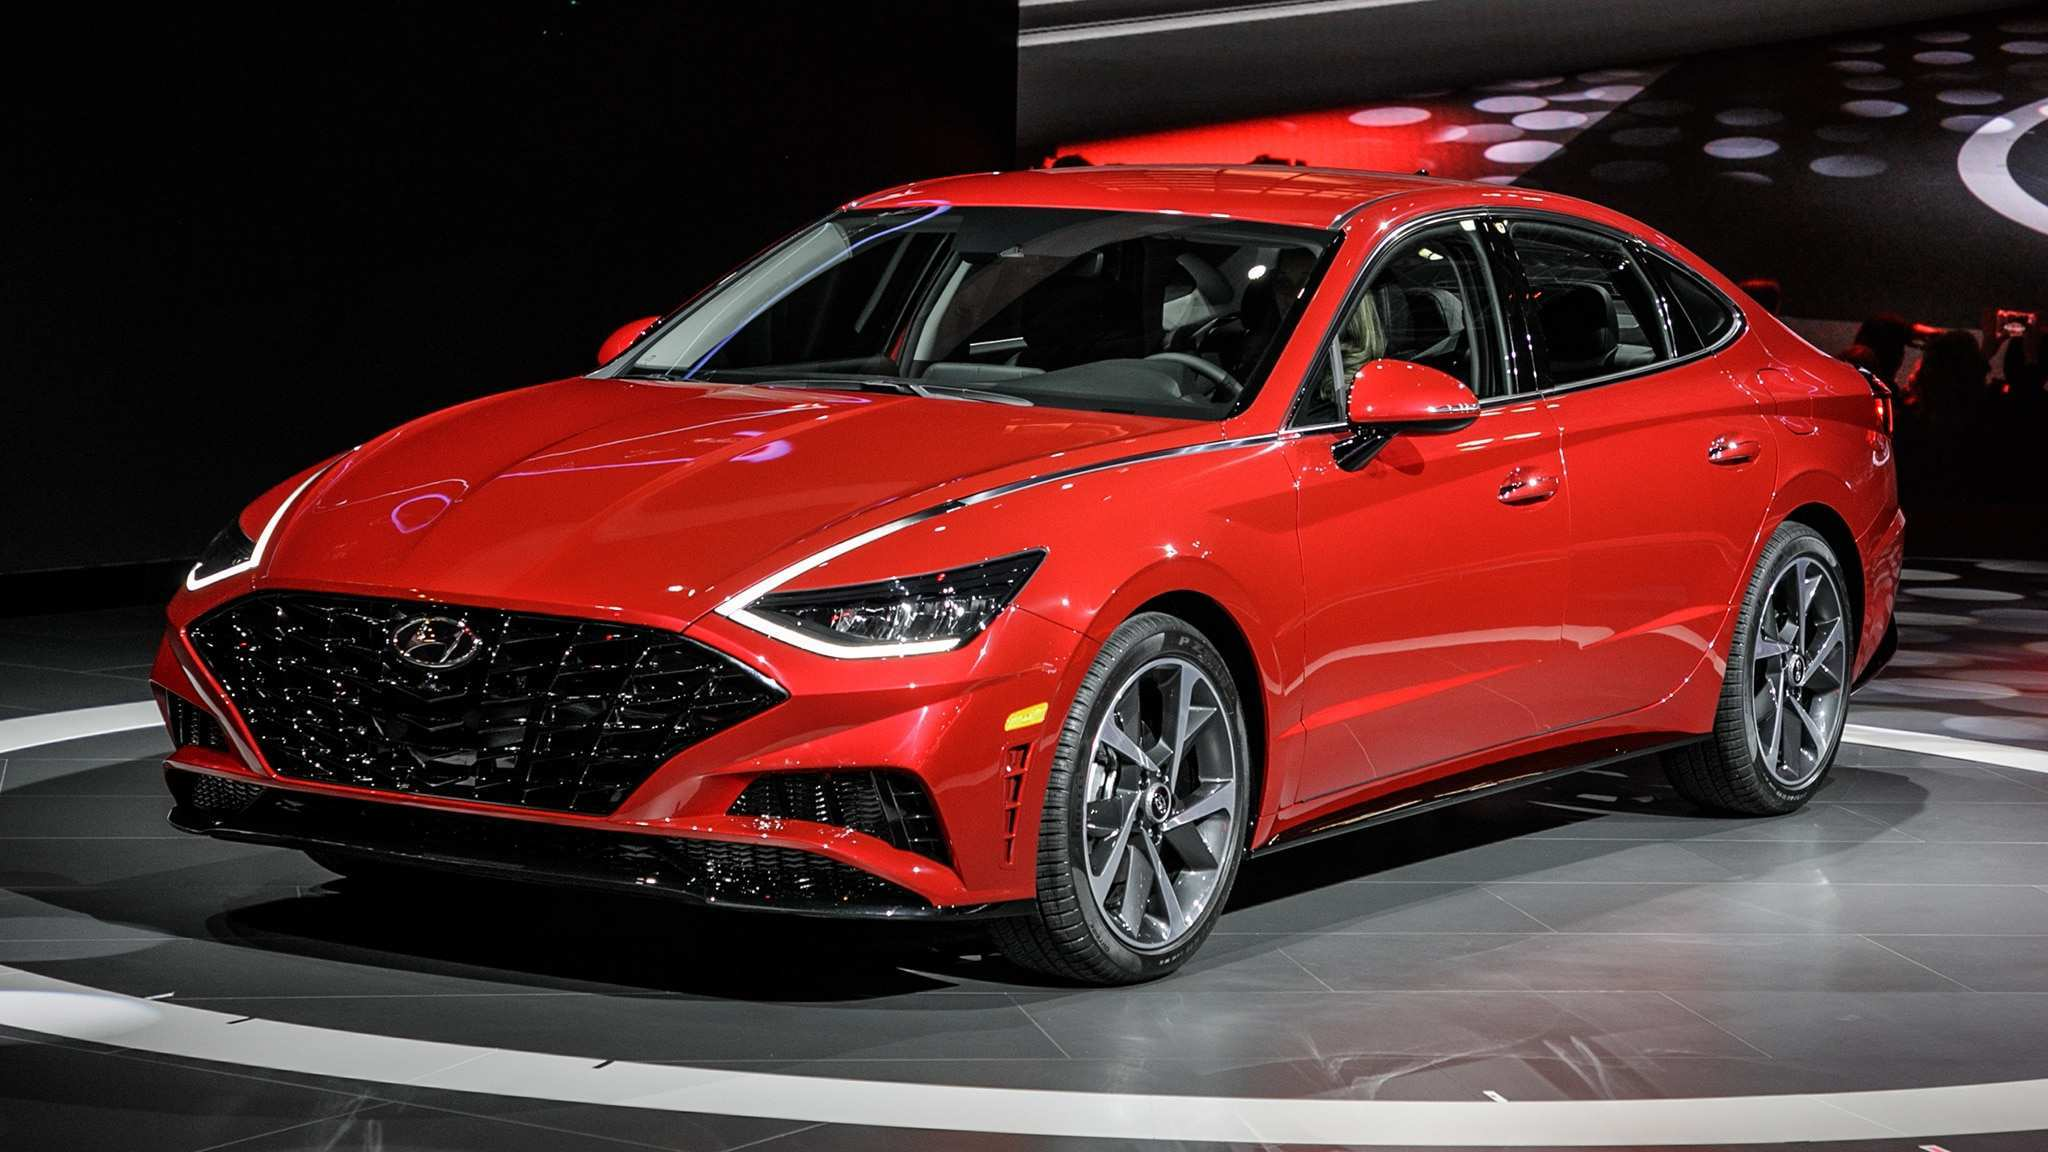 67 New 2020 Hyundai Sonata N Line New Review with 2020 Hyundai Sonata N Line